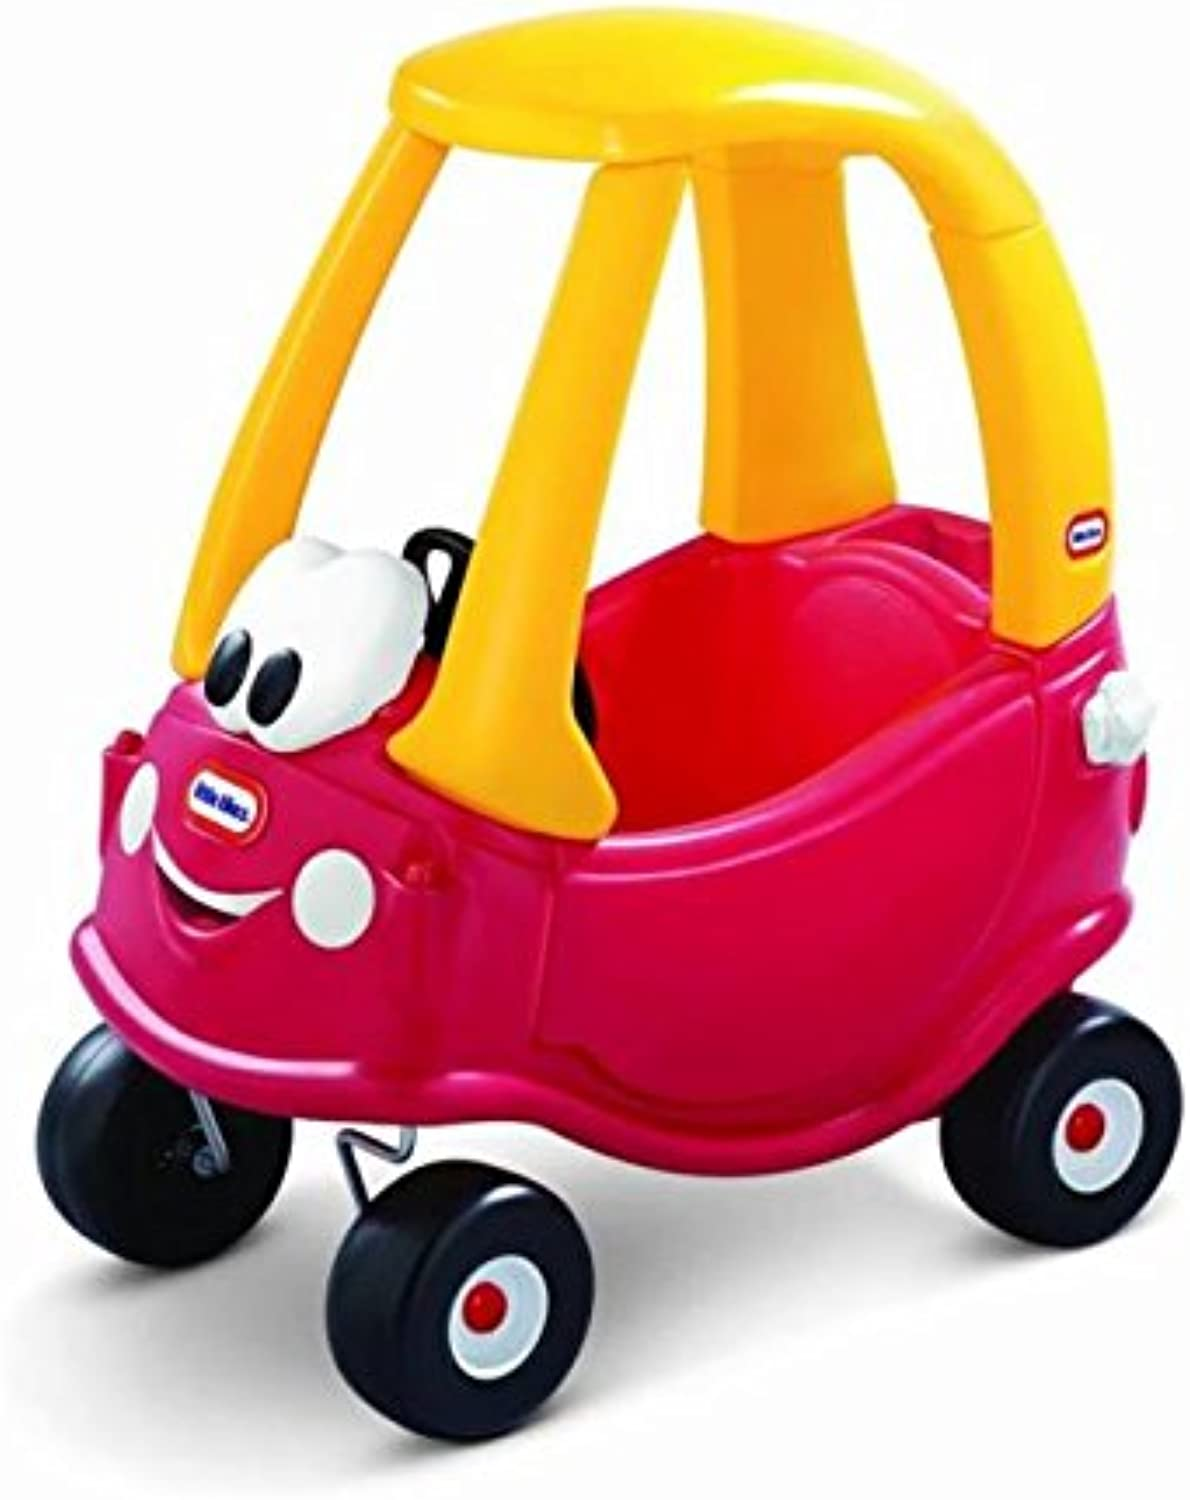 Little Tikes Cozy Coupe Car  Classic Red,Toys For Toddlers And Kids